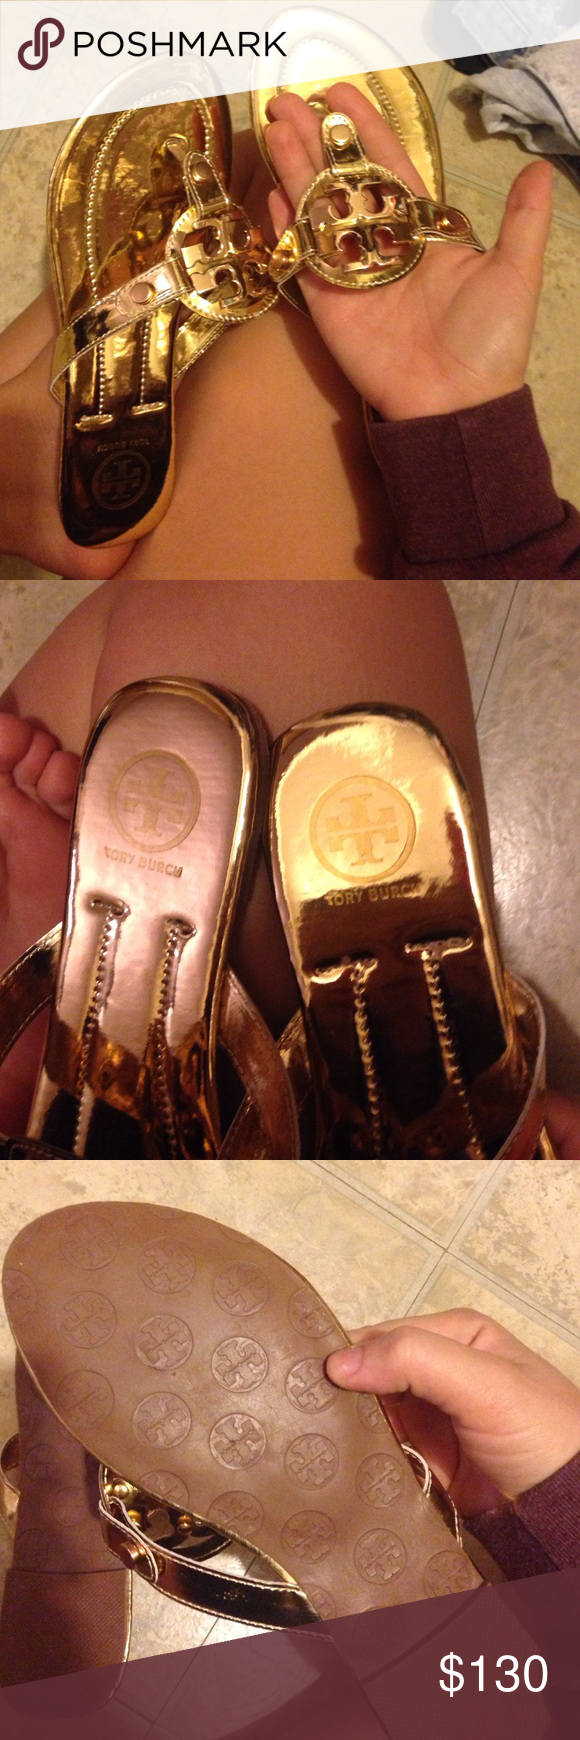 7275b6ed5349df Tory burch miller sandals in gold inspired look alike miller sandals! never  been worn! i am size 7.5-8 and this is how they fit me!